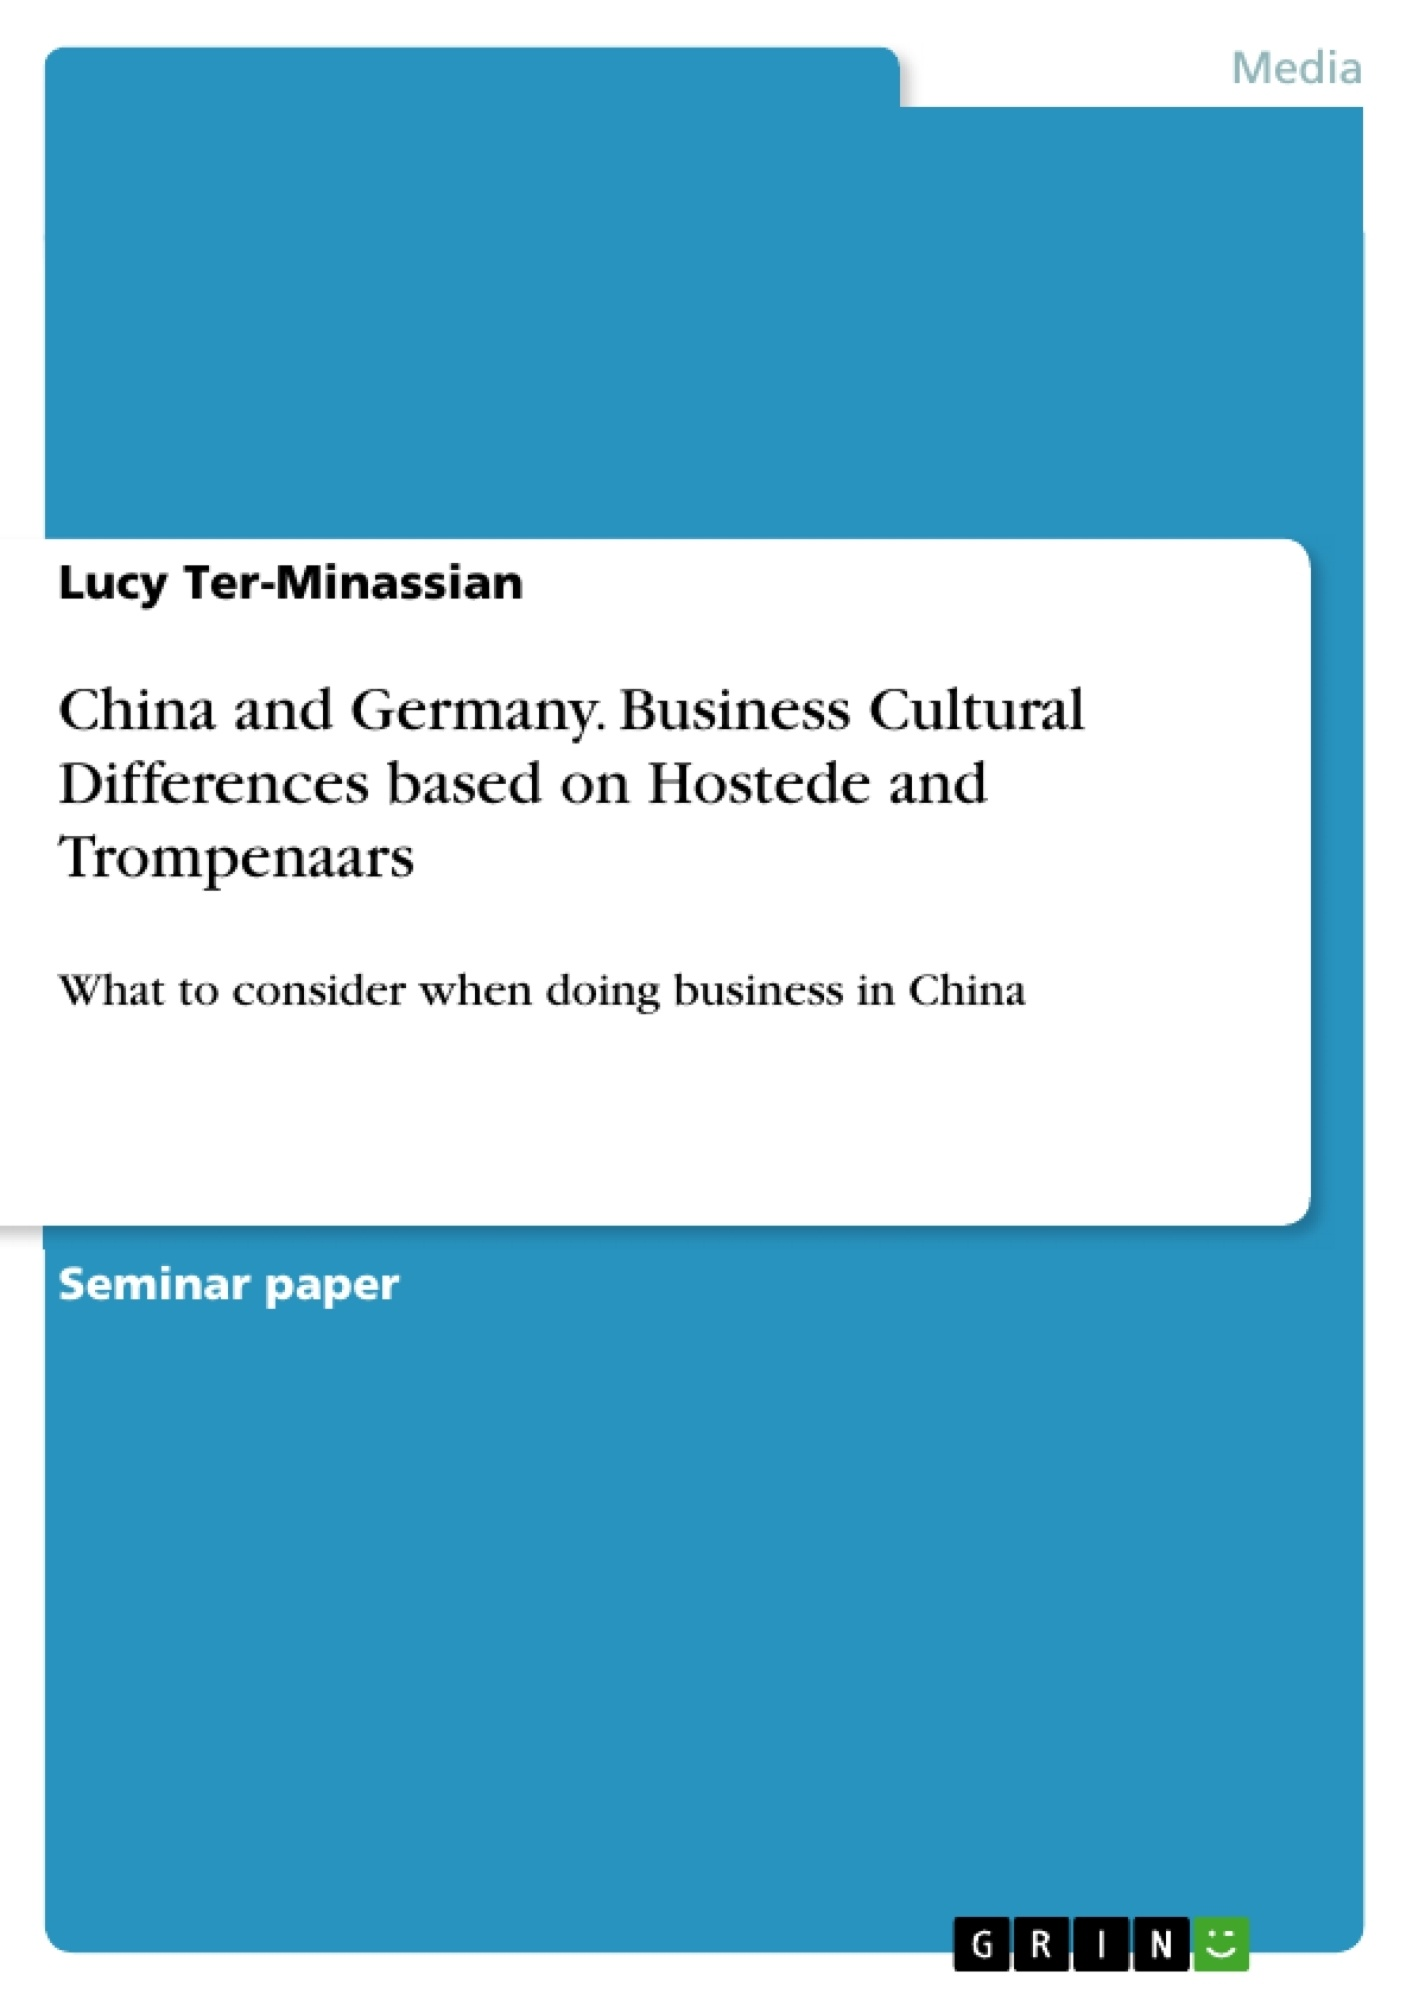 Title: China and Germany. Business Cultural Differences based on Hostede and Trompenaars